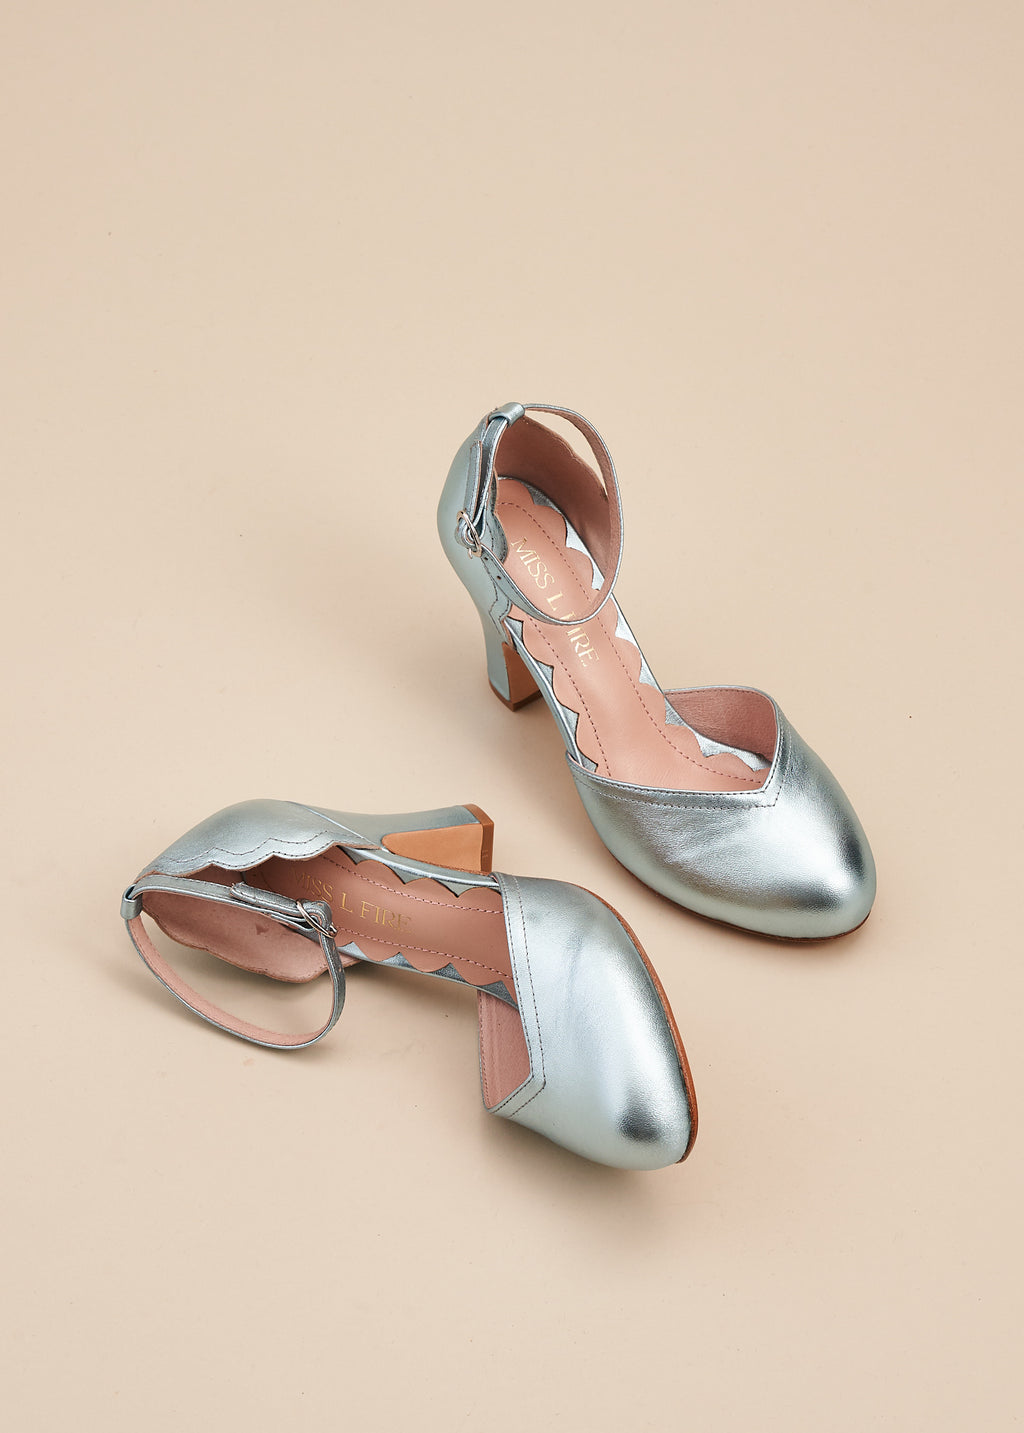 Layla, by Miss L Fire,  in luxurious sky blue metallic leather is our go-to, every day, vintage inspired two part bar shoe with 'v' shaped topline, adjustable ankle strap, 8cm curved heel and cute scalloped detail. Wear at home, or plan a future party. Either way, prepare to dance all night in this classic style.